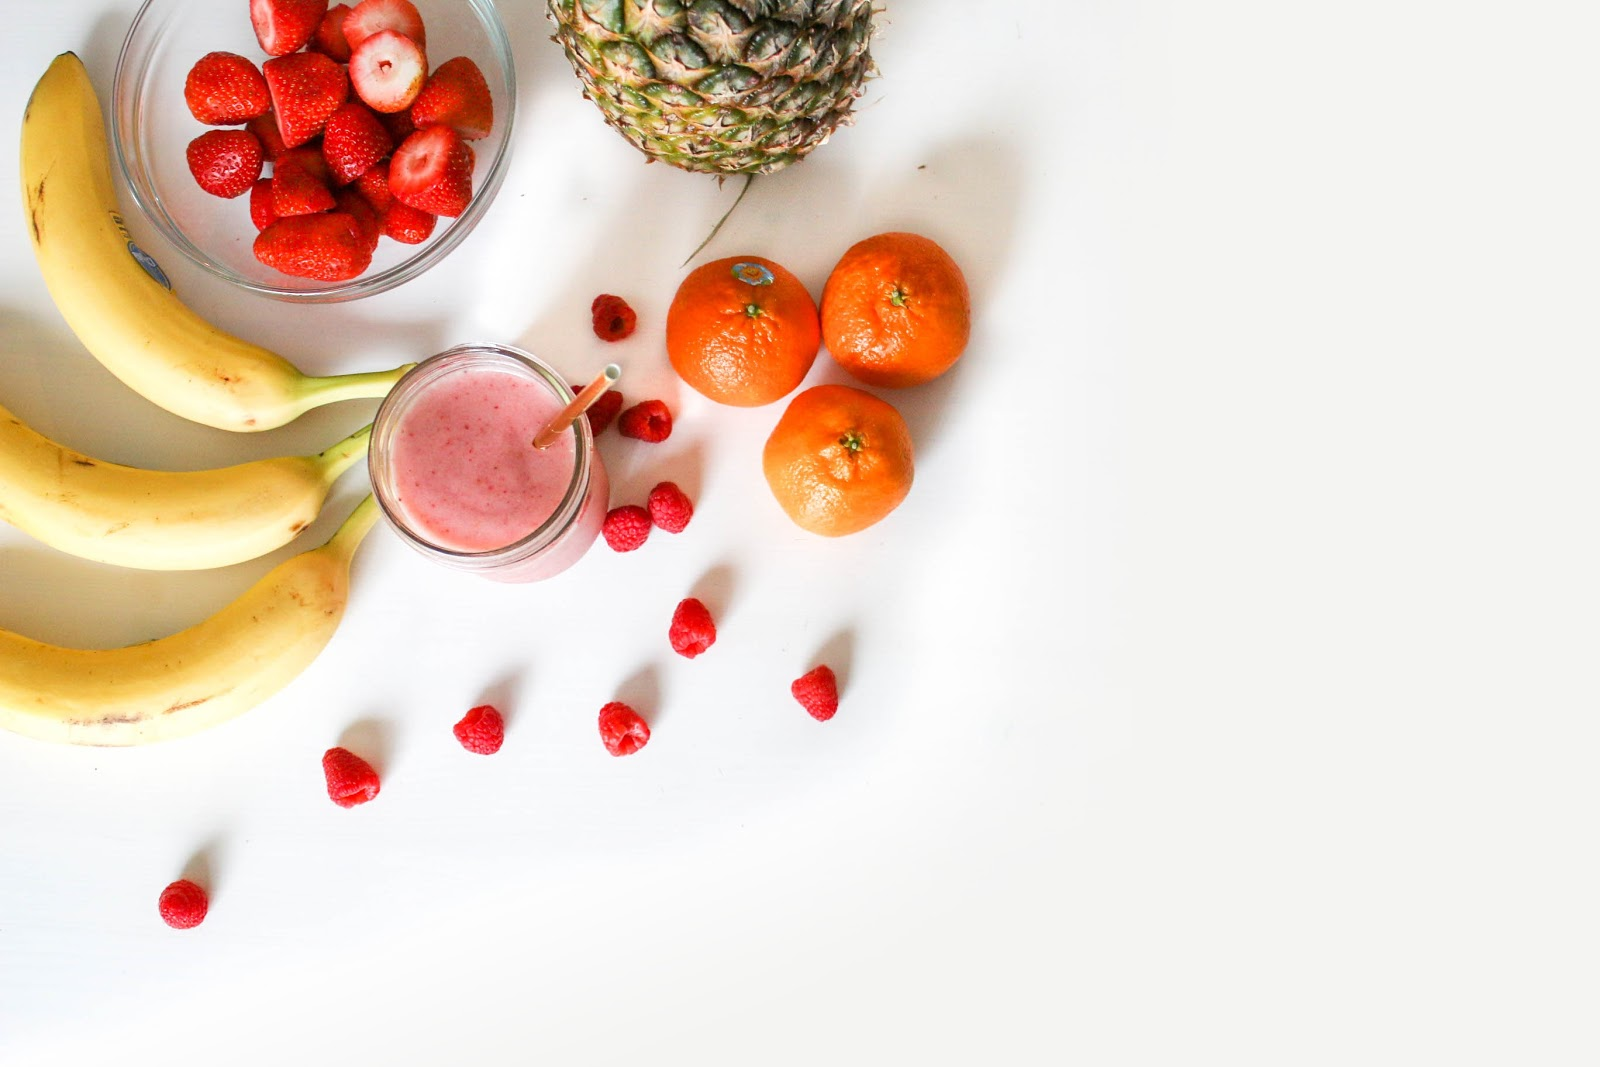 Microbiome diet: fresh fruit and a smoothie